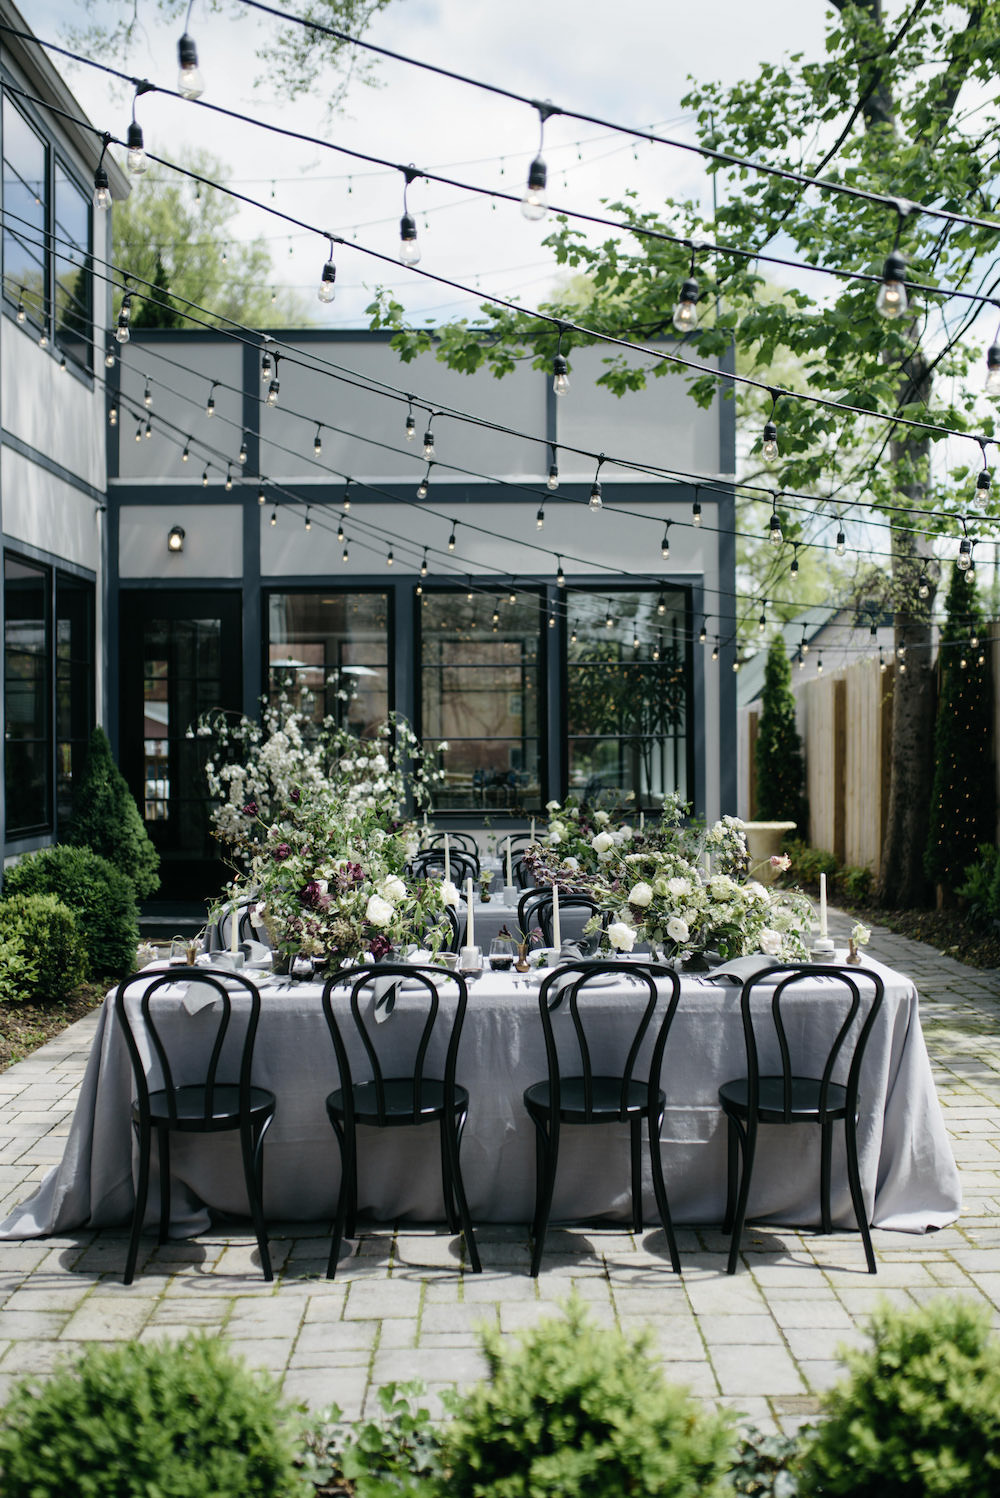 12th-Table-WEDDING-RENTALS-NASHVILLE-Lounge-Chairs-for-Rent-ENTERTAINING-party-rentals-event-rentals-Germantown-Inn-45.jpg